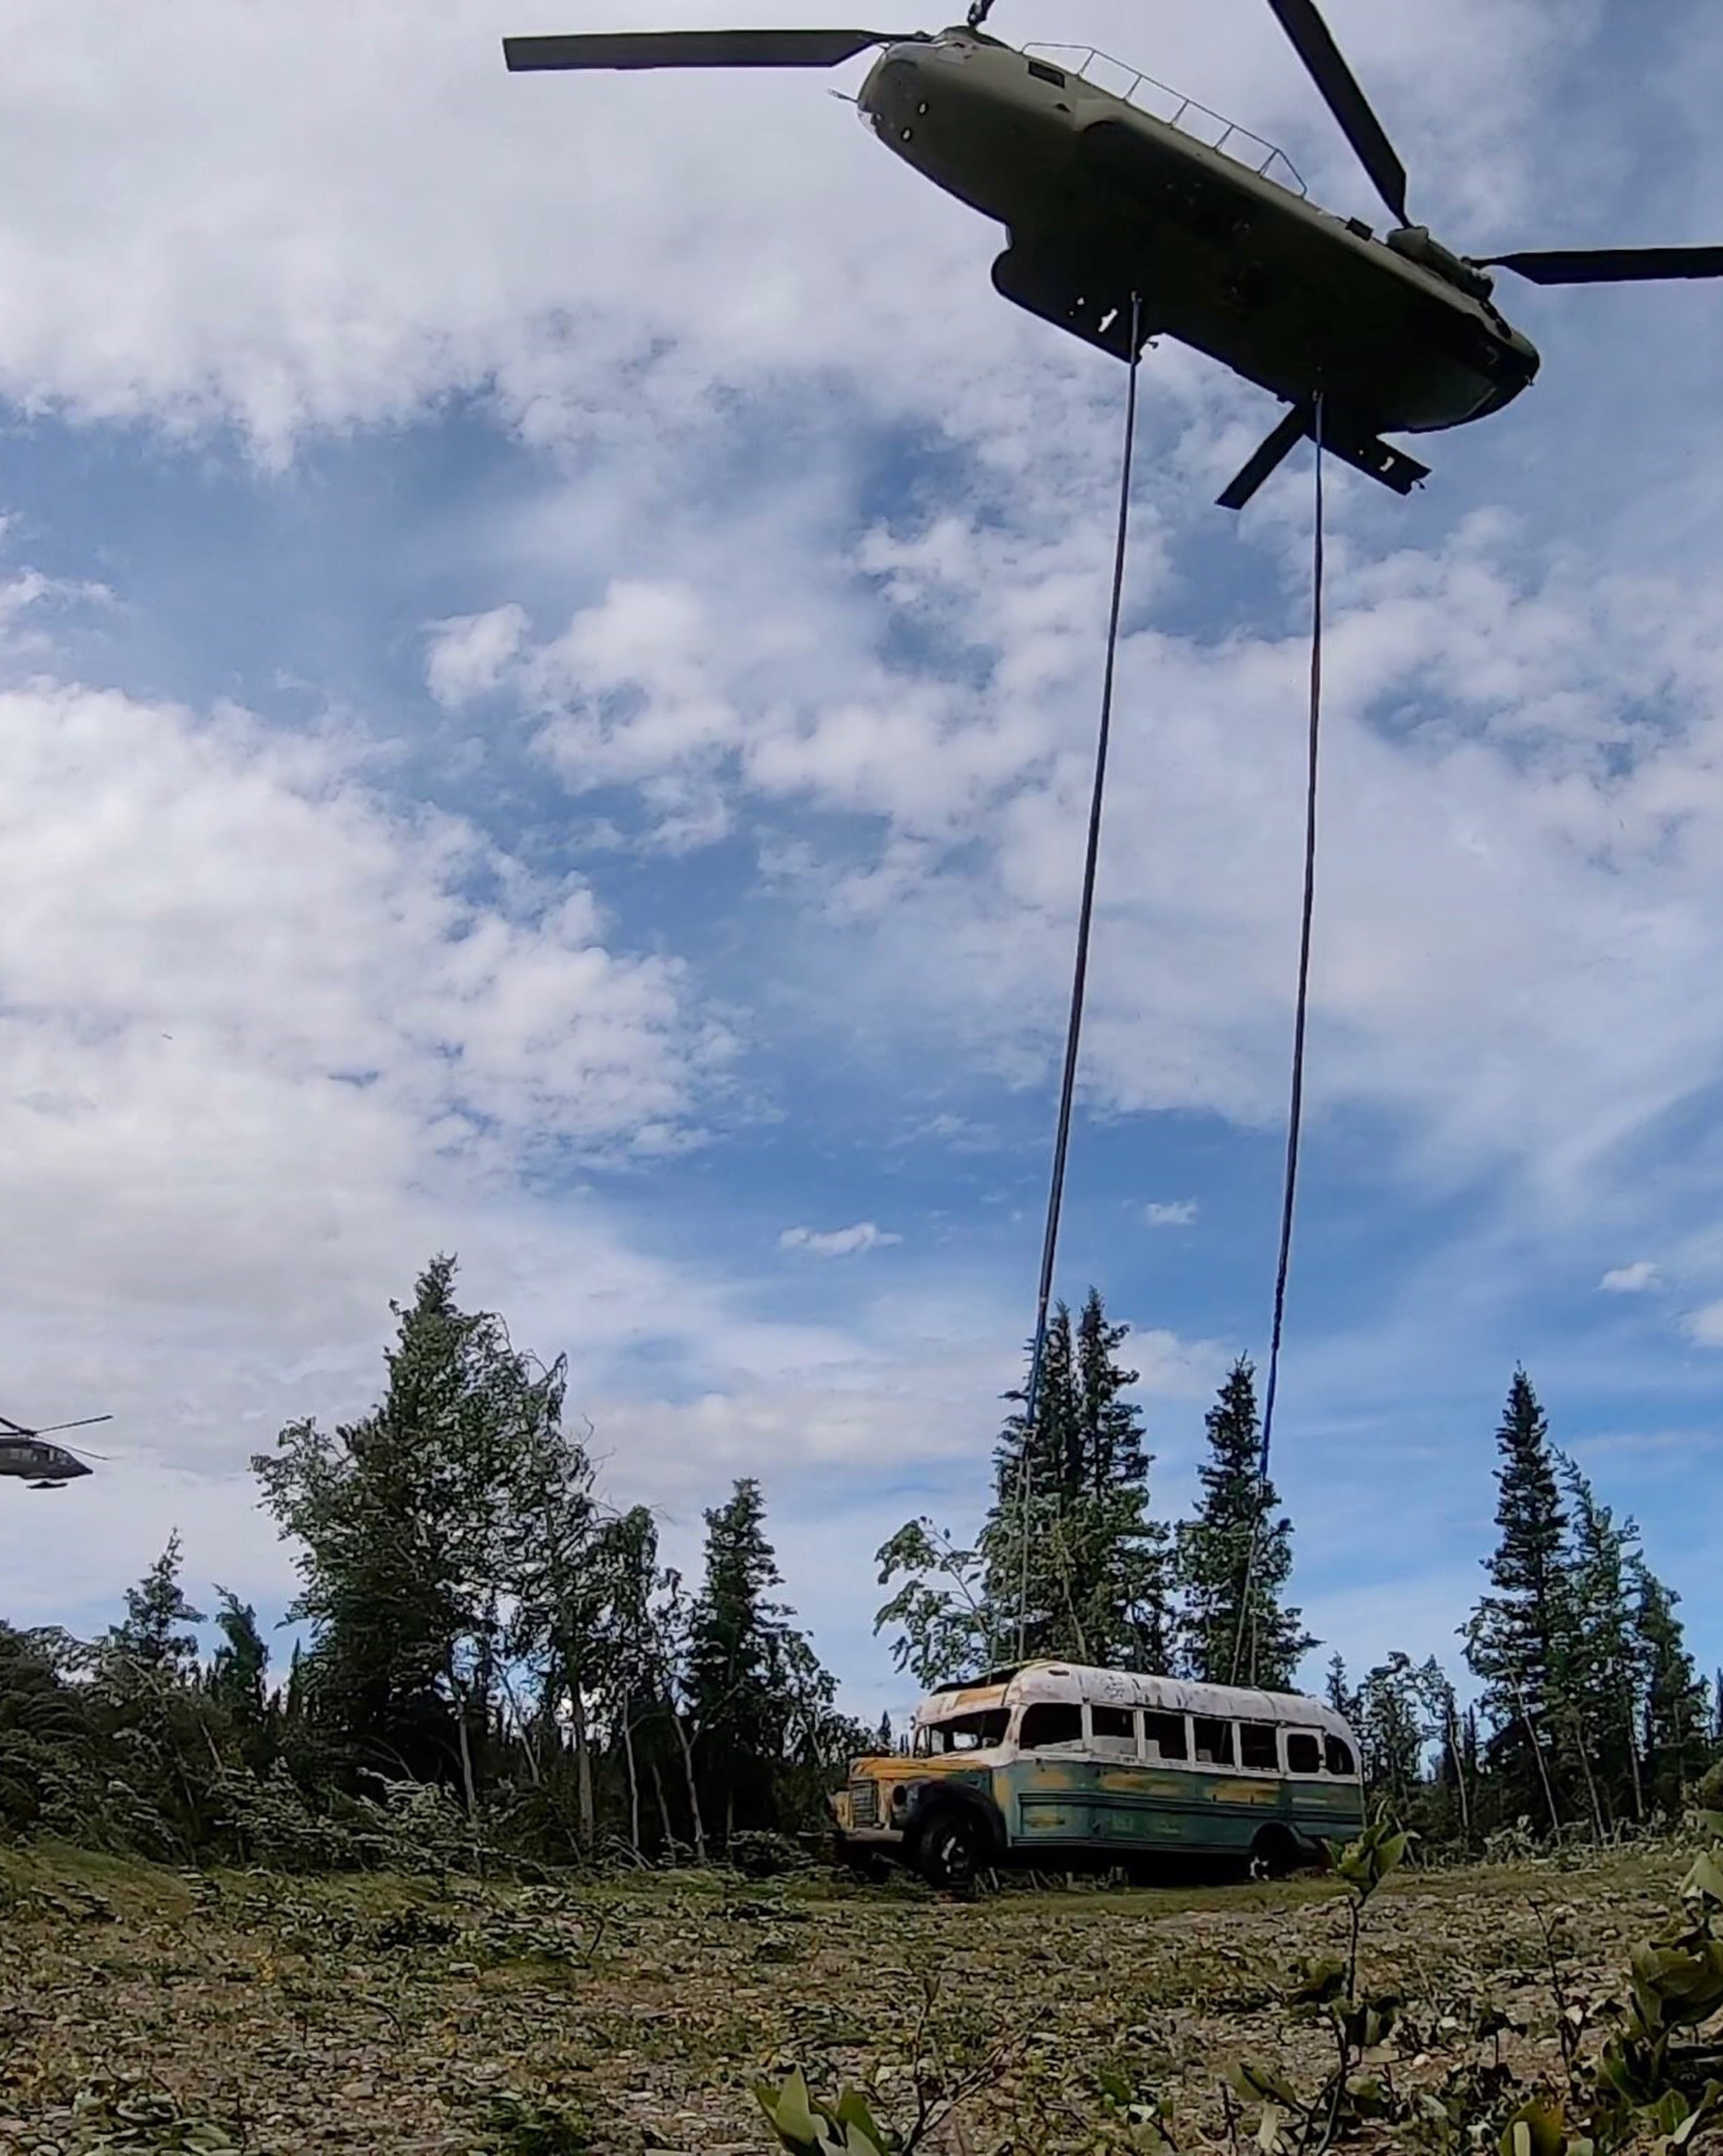 "In this photo released by the Alaska National Guard, Alaska Army National Guard soldiers use a CH-47 Chinook helicopter to removed an abandoned bus, popularized by the book and movie ""Into the Wild,"" out of its location in the Alaska backcountry Thursday, June 18, 2020, as part of a training mission. Alaska Natural Resources Commissioner Corri Feige, in a release, said the bus will be kept in a secure location while her department weighs various options for what to do with it. (Sgt. Seth LaCount/Alaska National Guard via AP)"